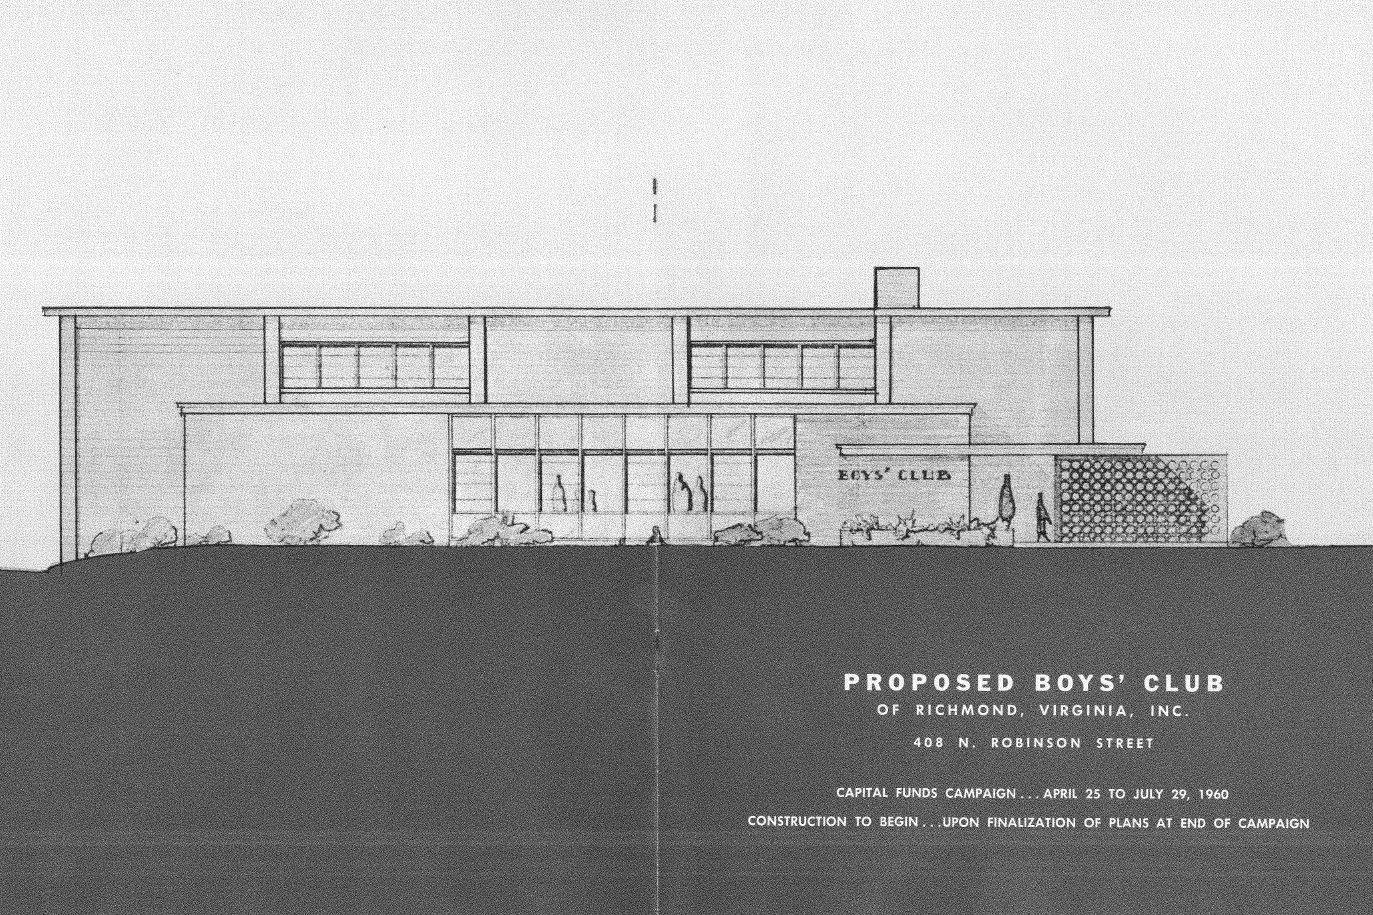 An early rendering of the Robinson Street Club, for its capital campaign.